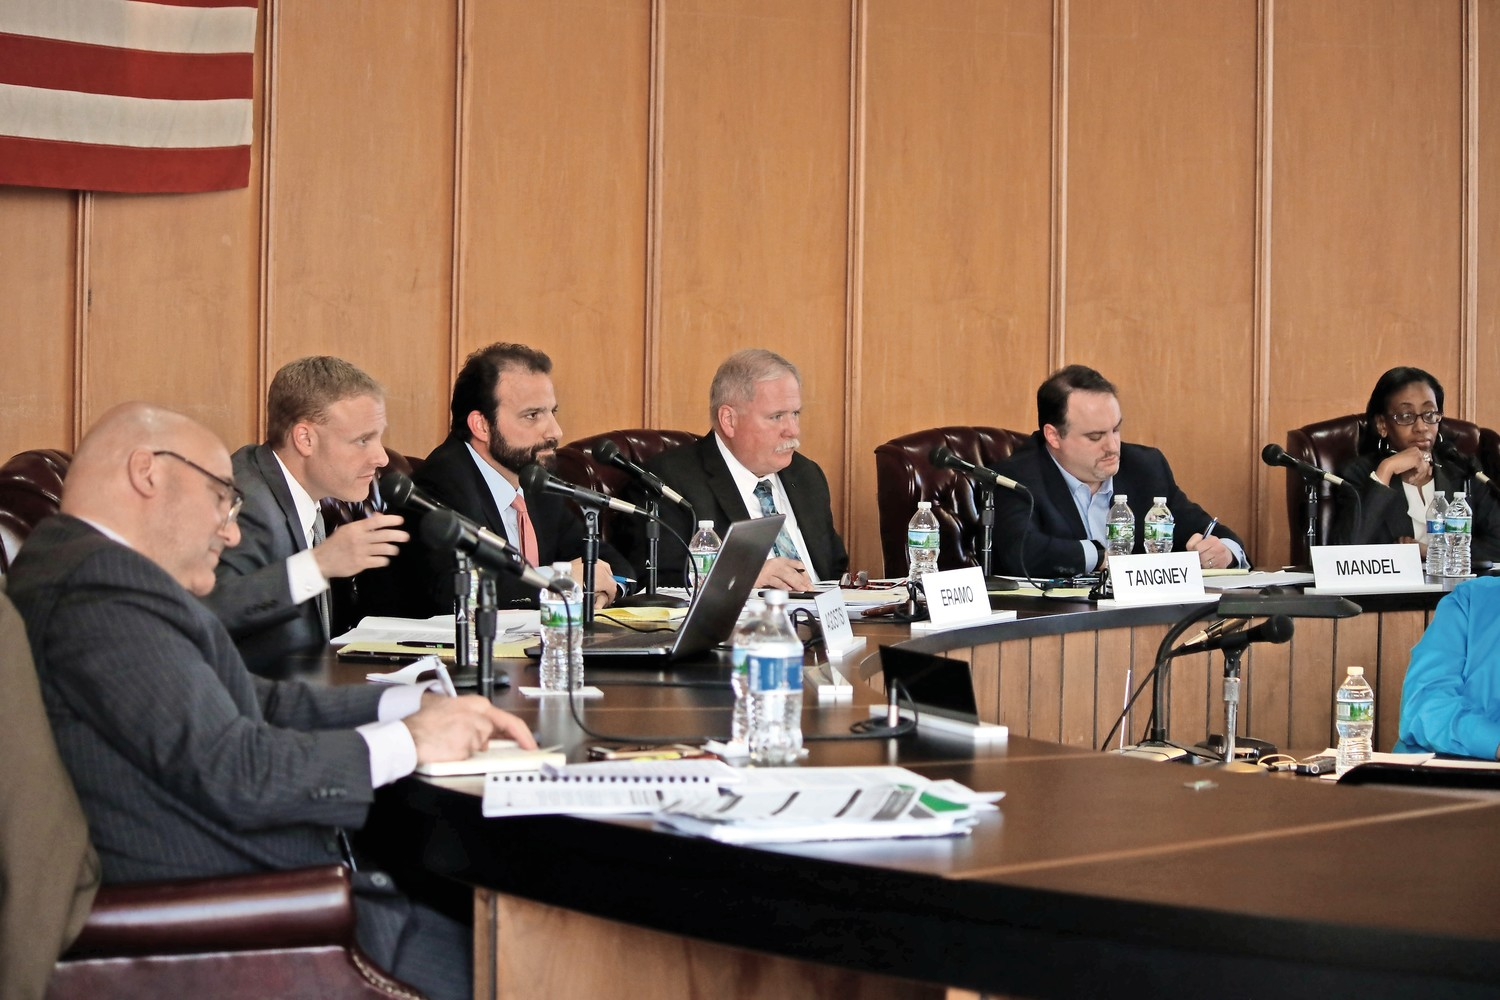 CITY COUNCIL President Anthony Eramo, third from left, said that the city has asked State Comptroller Tom DiNapoli's office to look into separation payments given to employees over the past six years as part of a comprehensive audit of the city's finances.